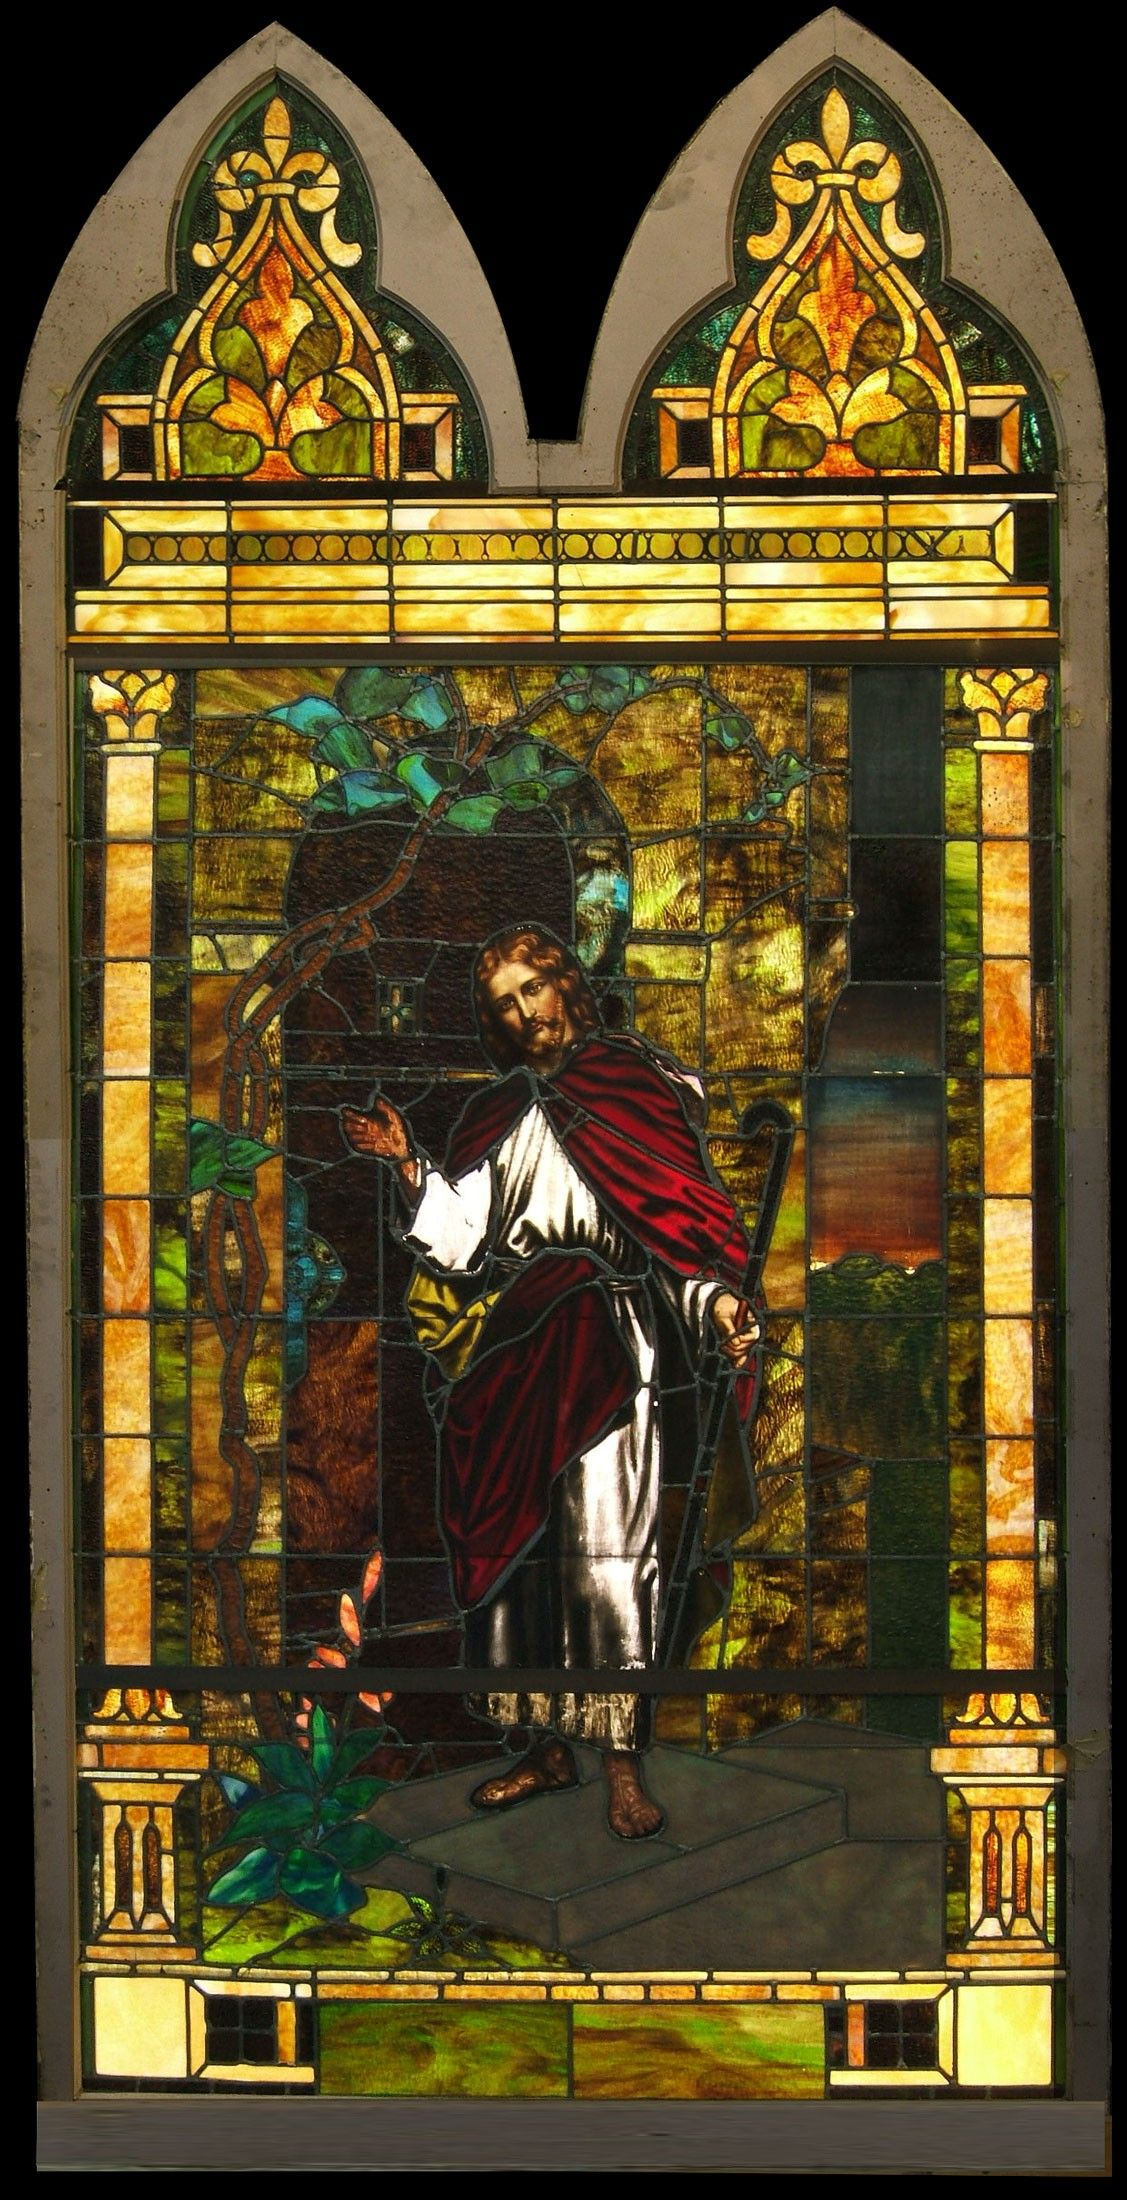 Antique ford brothers studio christ knocking on door stained glass